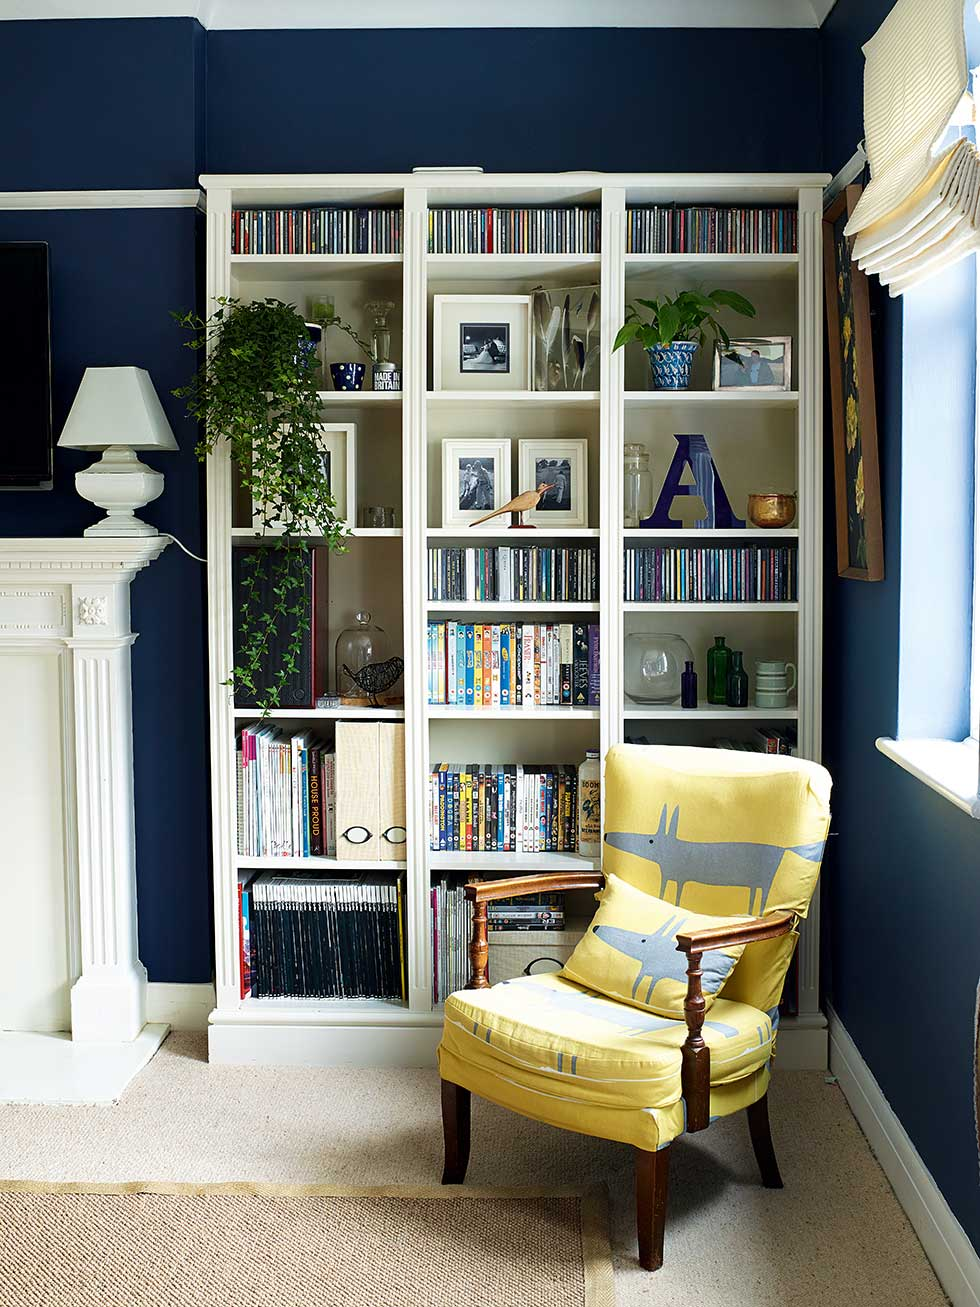 Dark blue living room - Navy Blue Living Room With White Storage